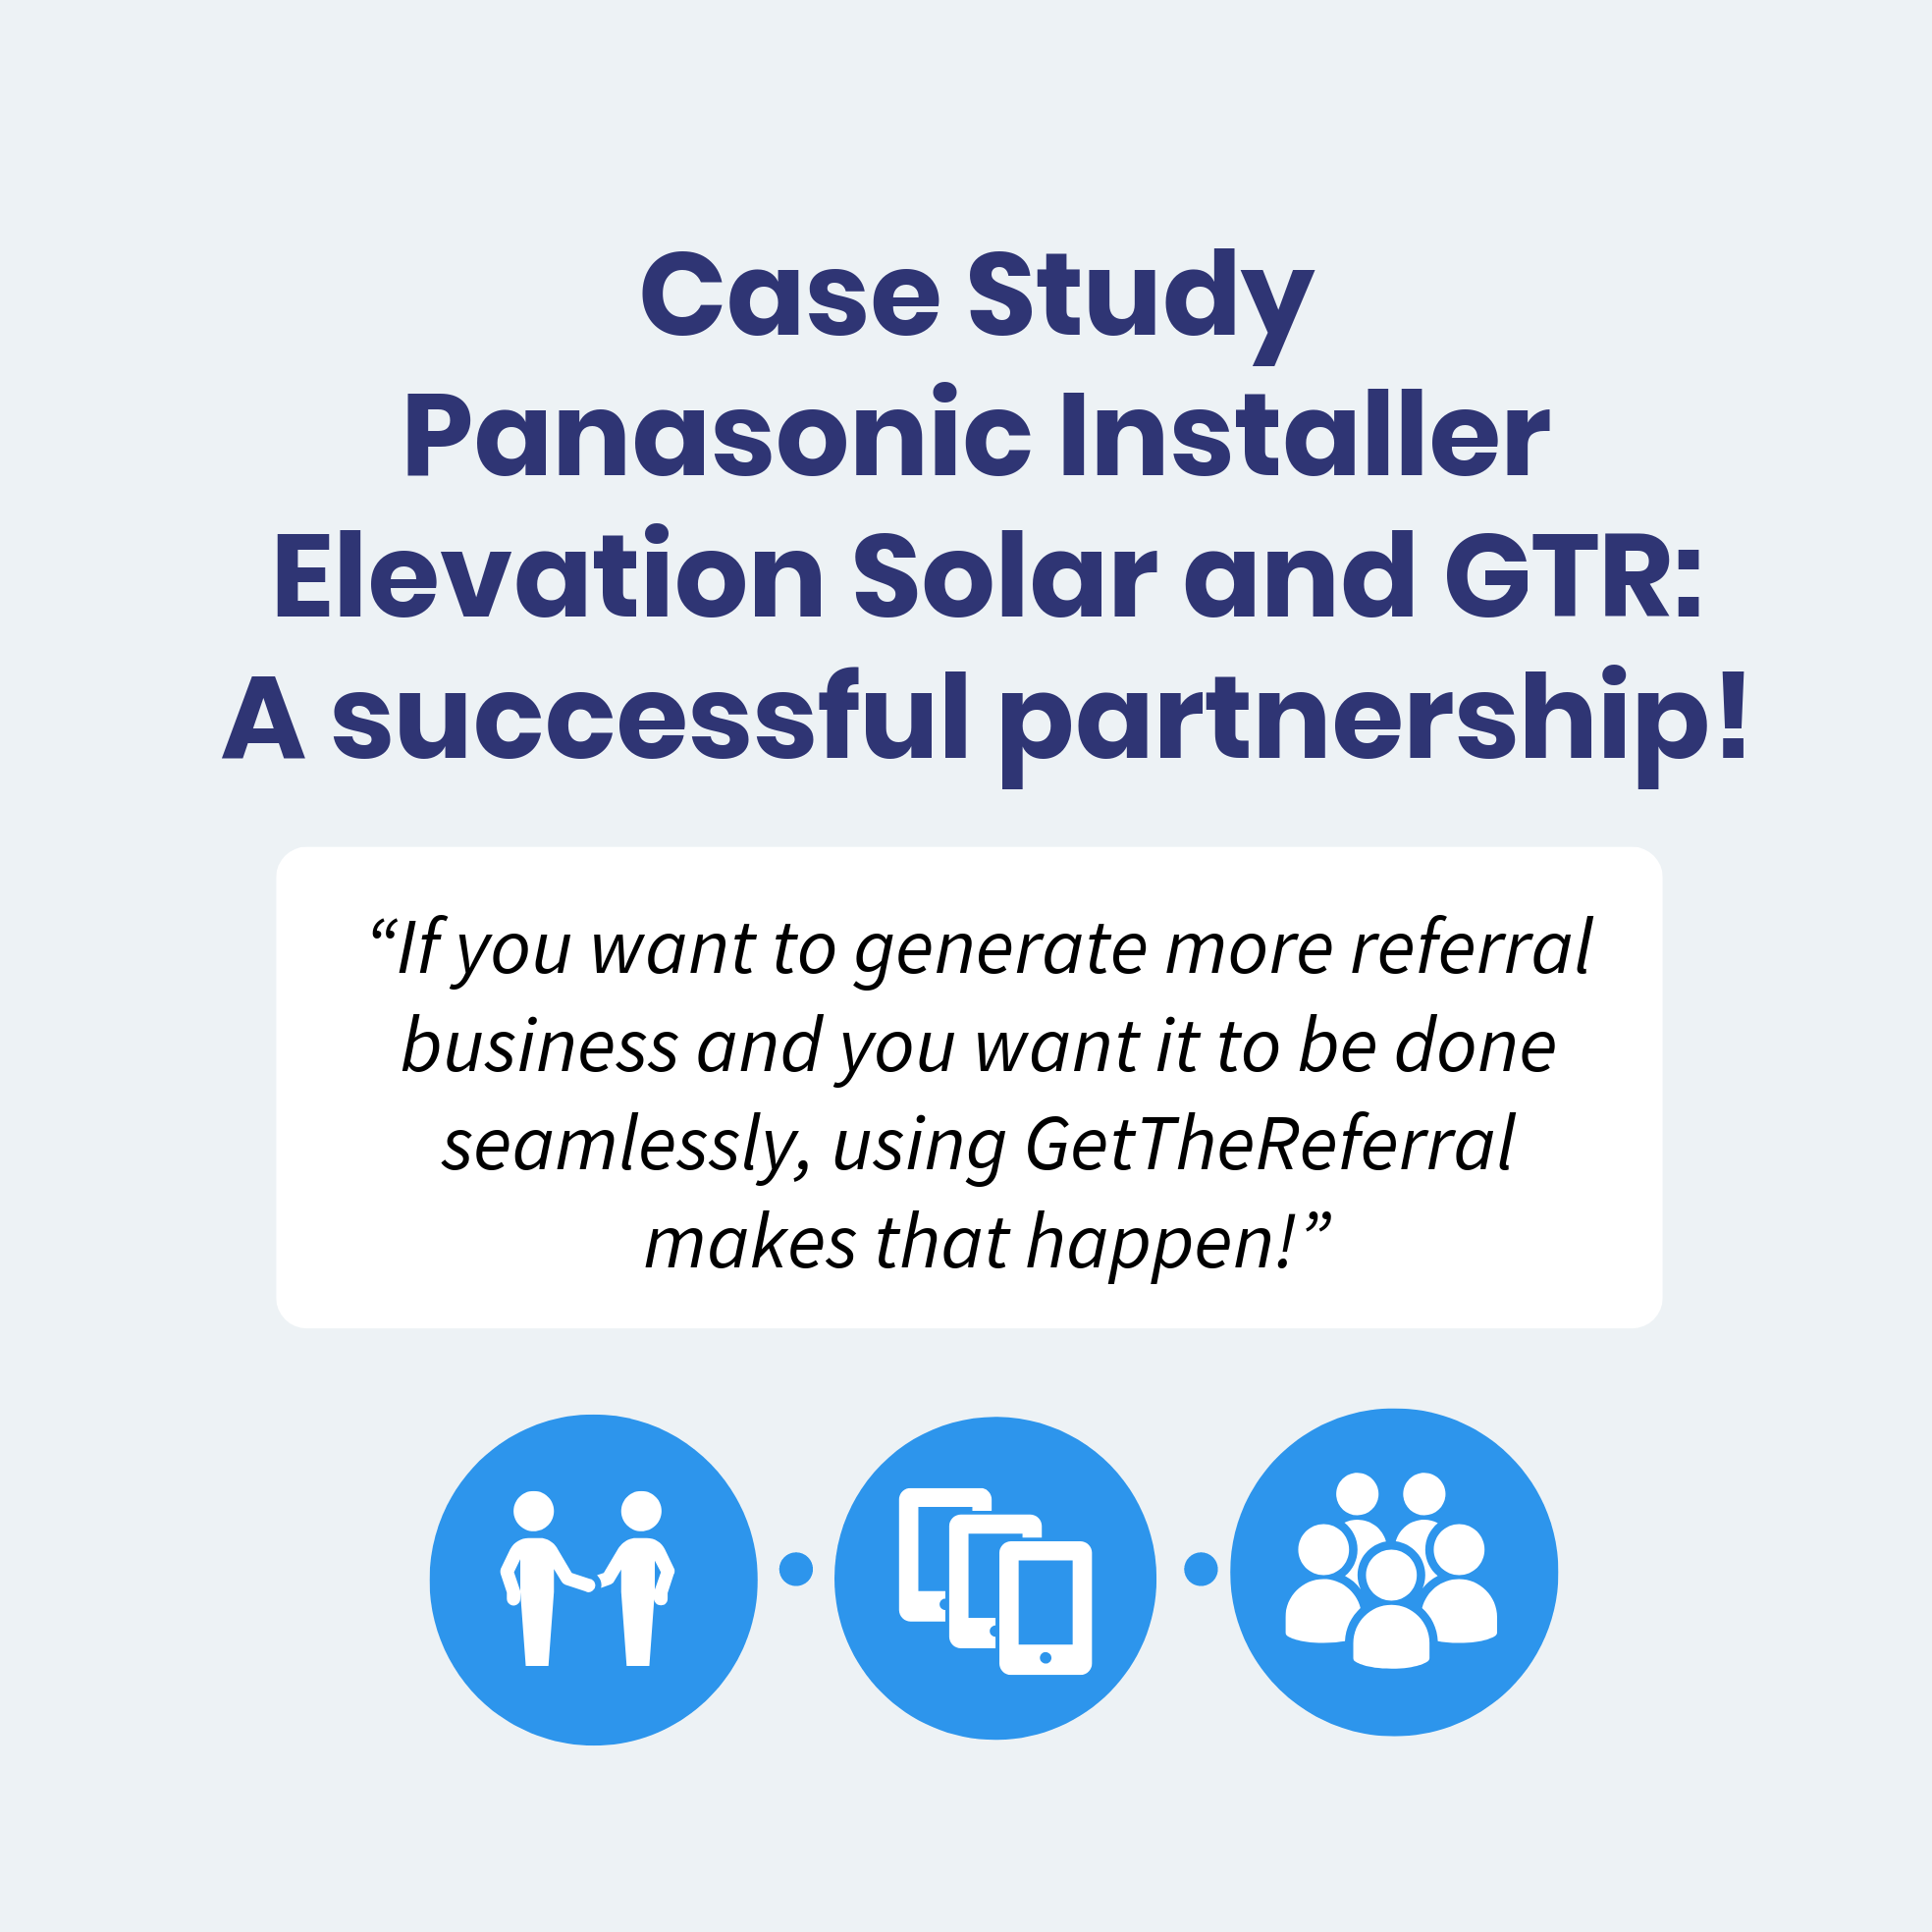 Panasonic Solar Referral Marketing Case Study